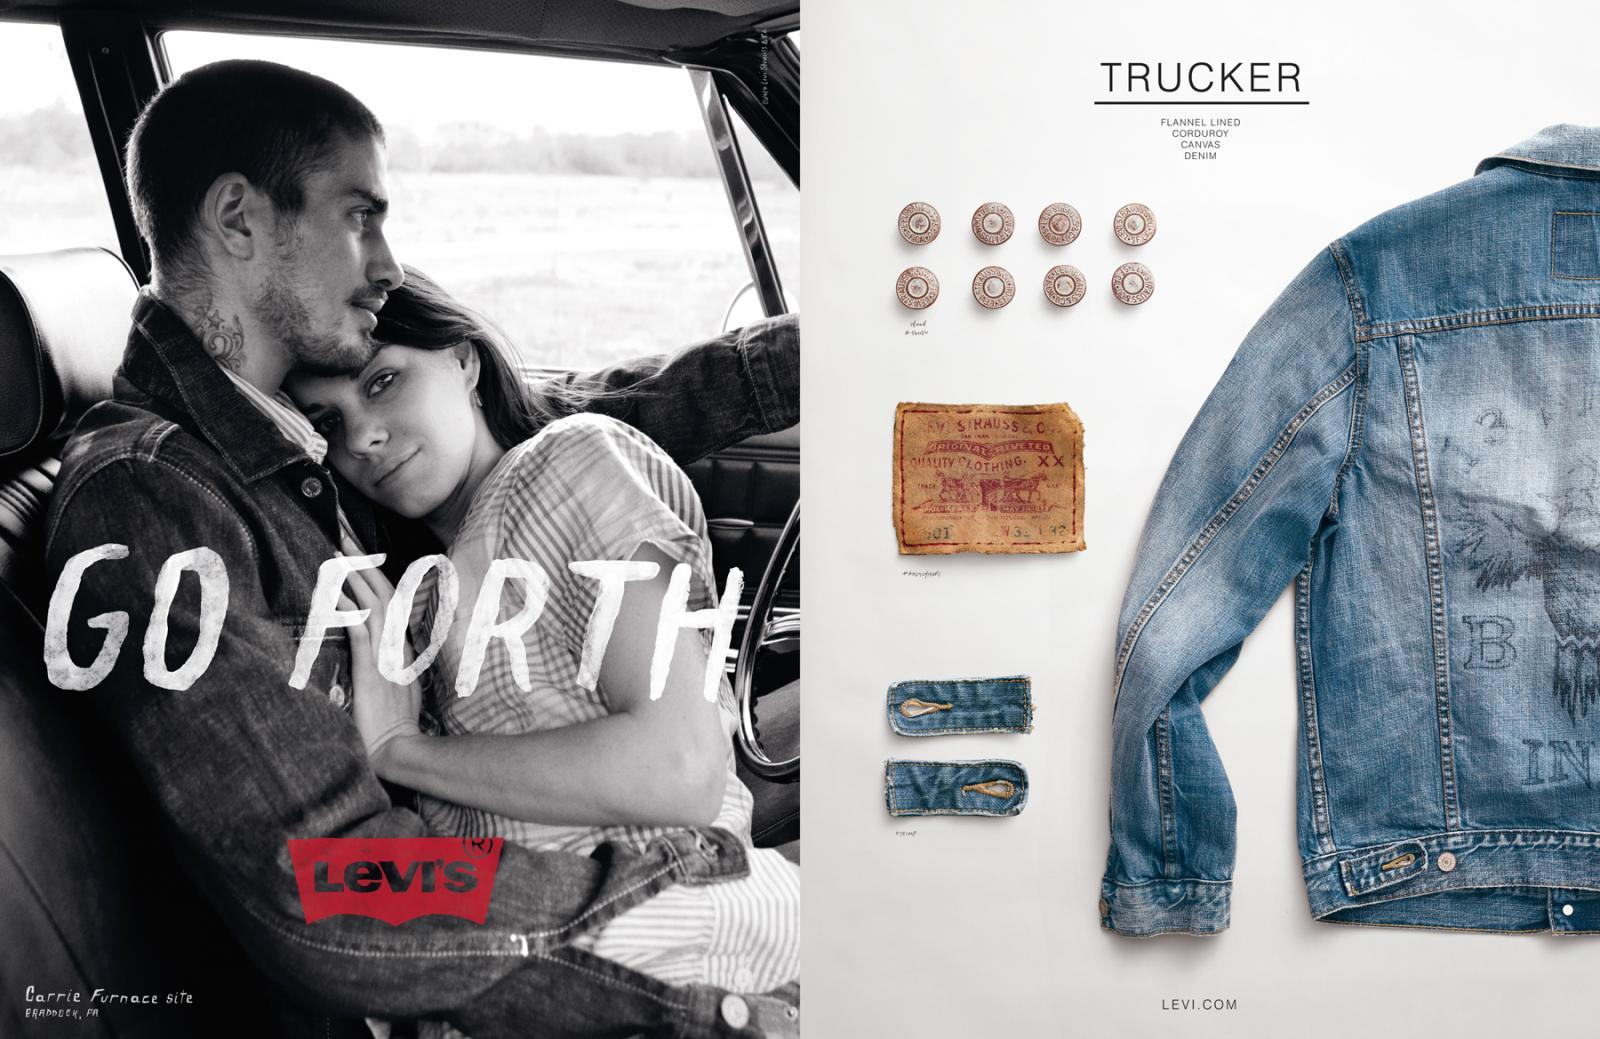 levi jeans management and marketing